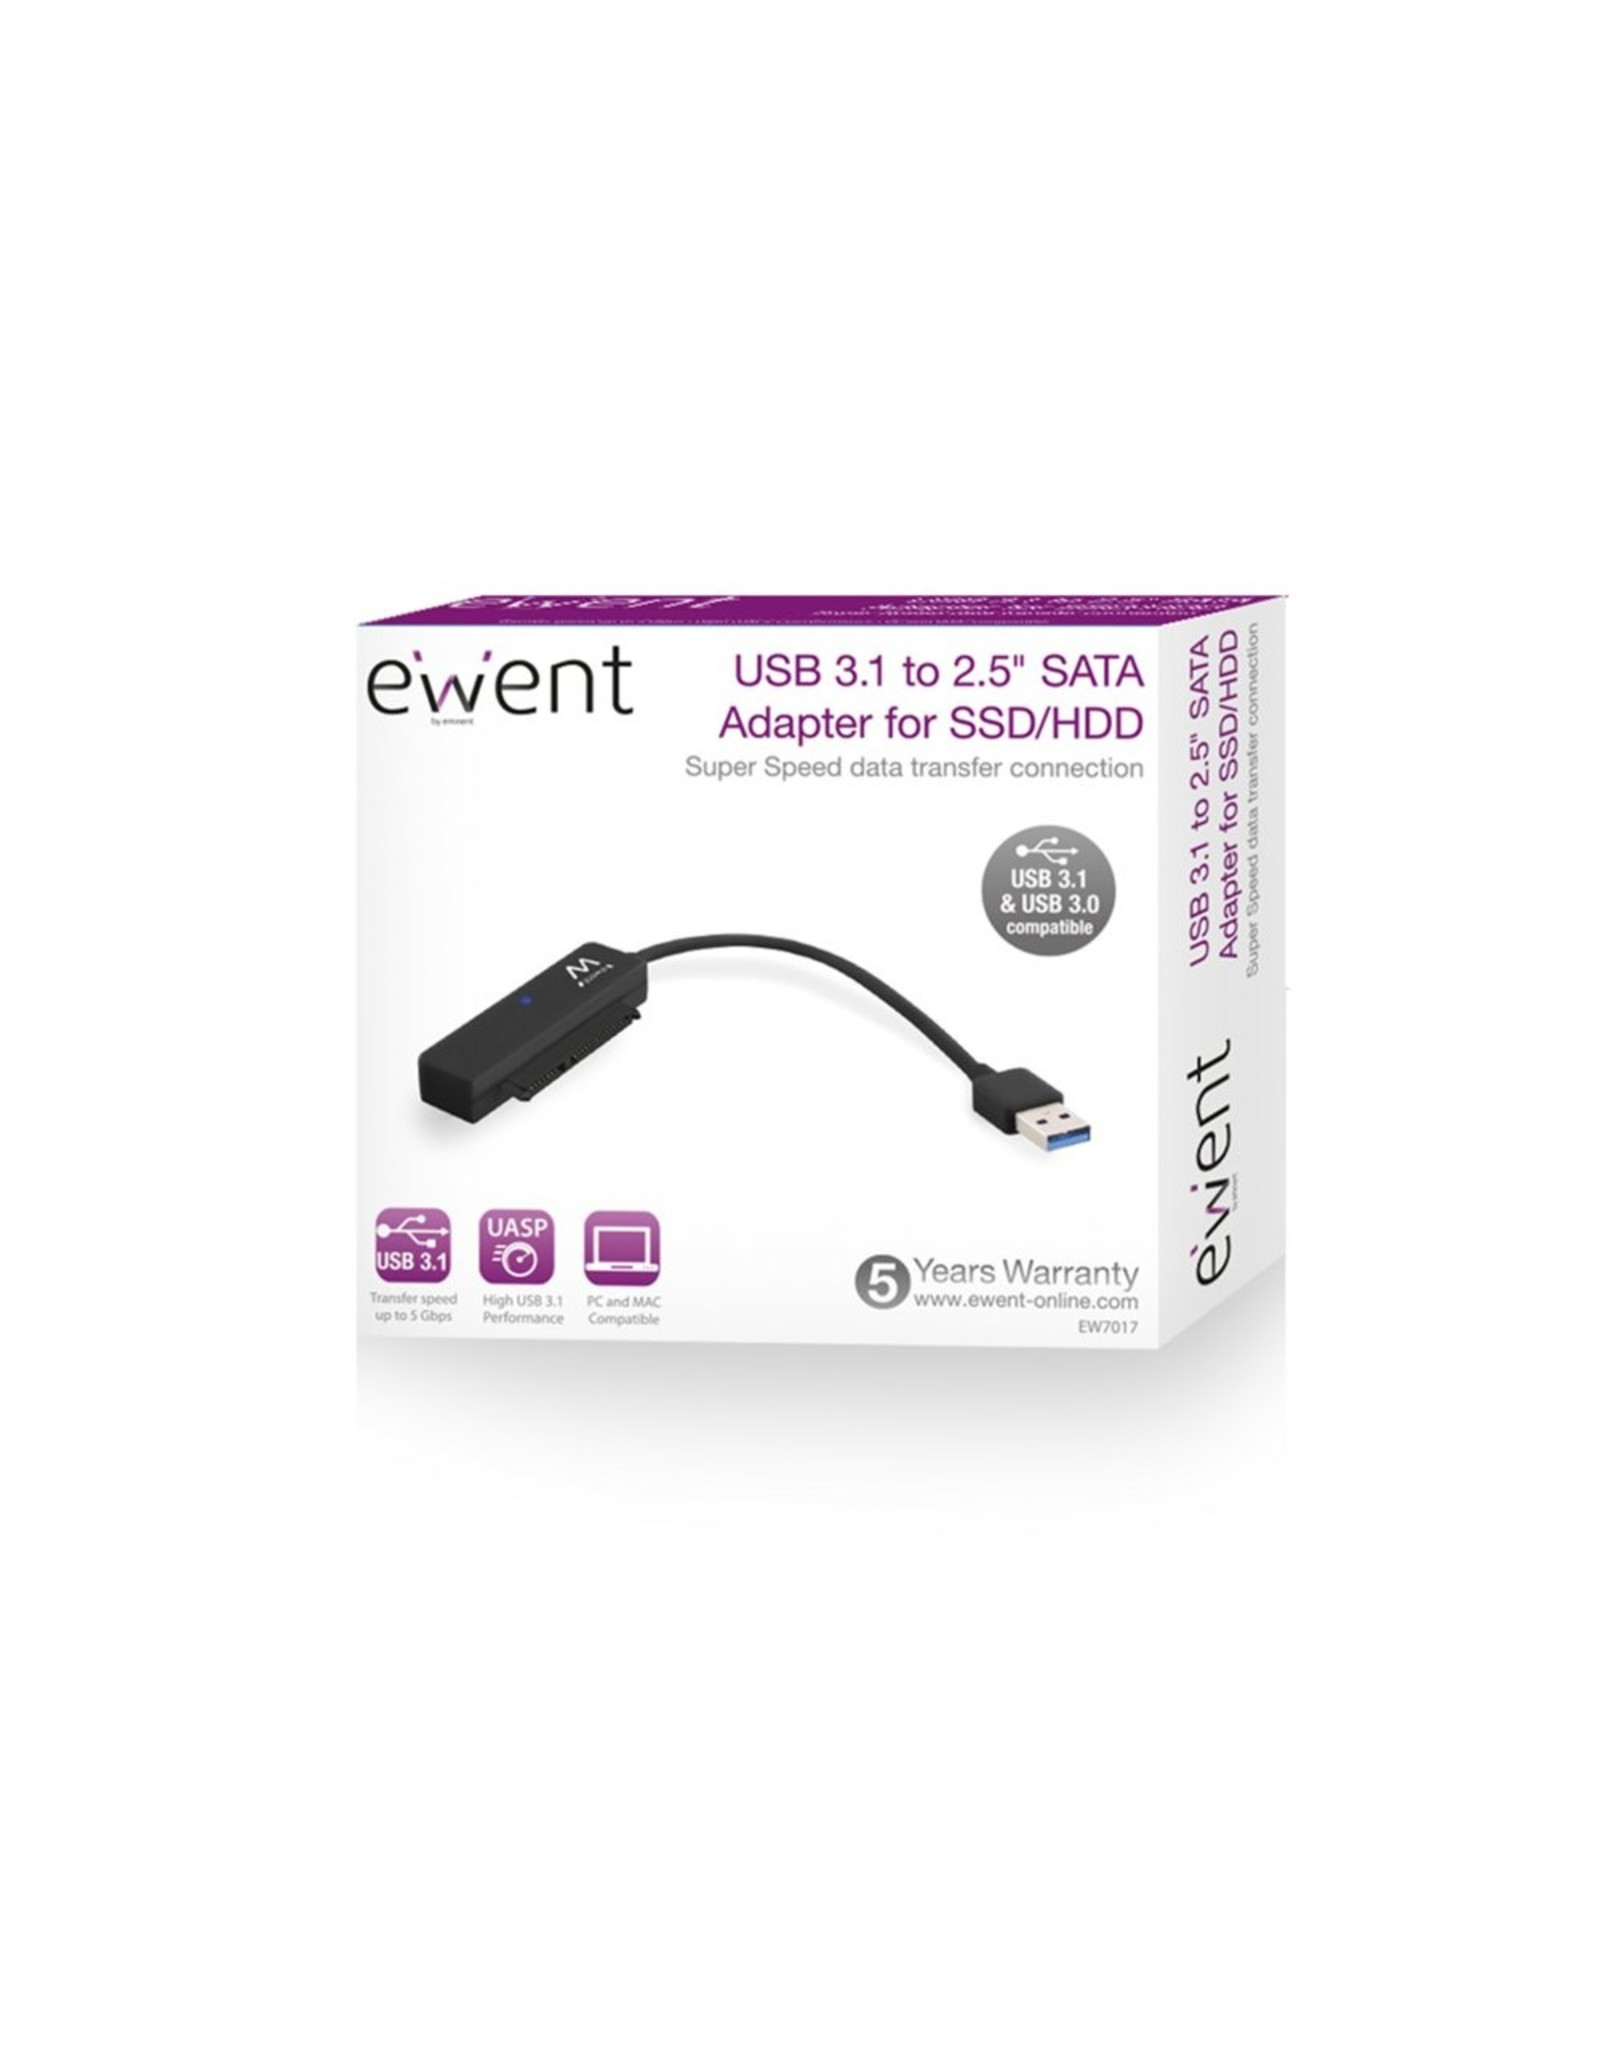 """Ewent USB 3.0 to 2.5"""" SATA Adapter Cable for SSD / HDD"""